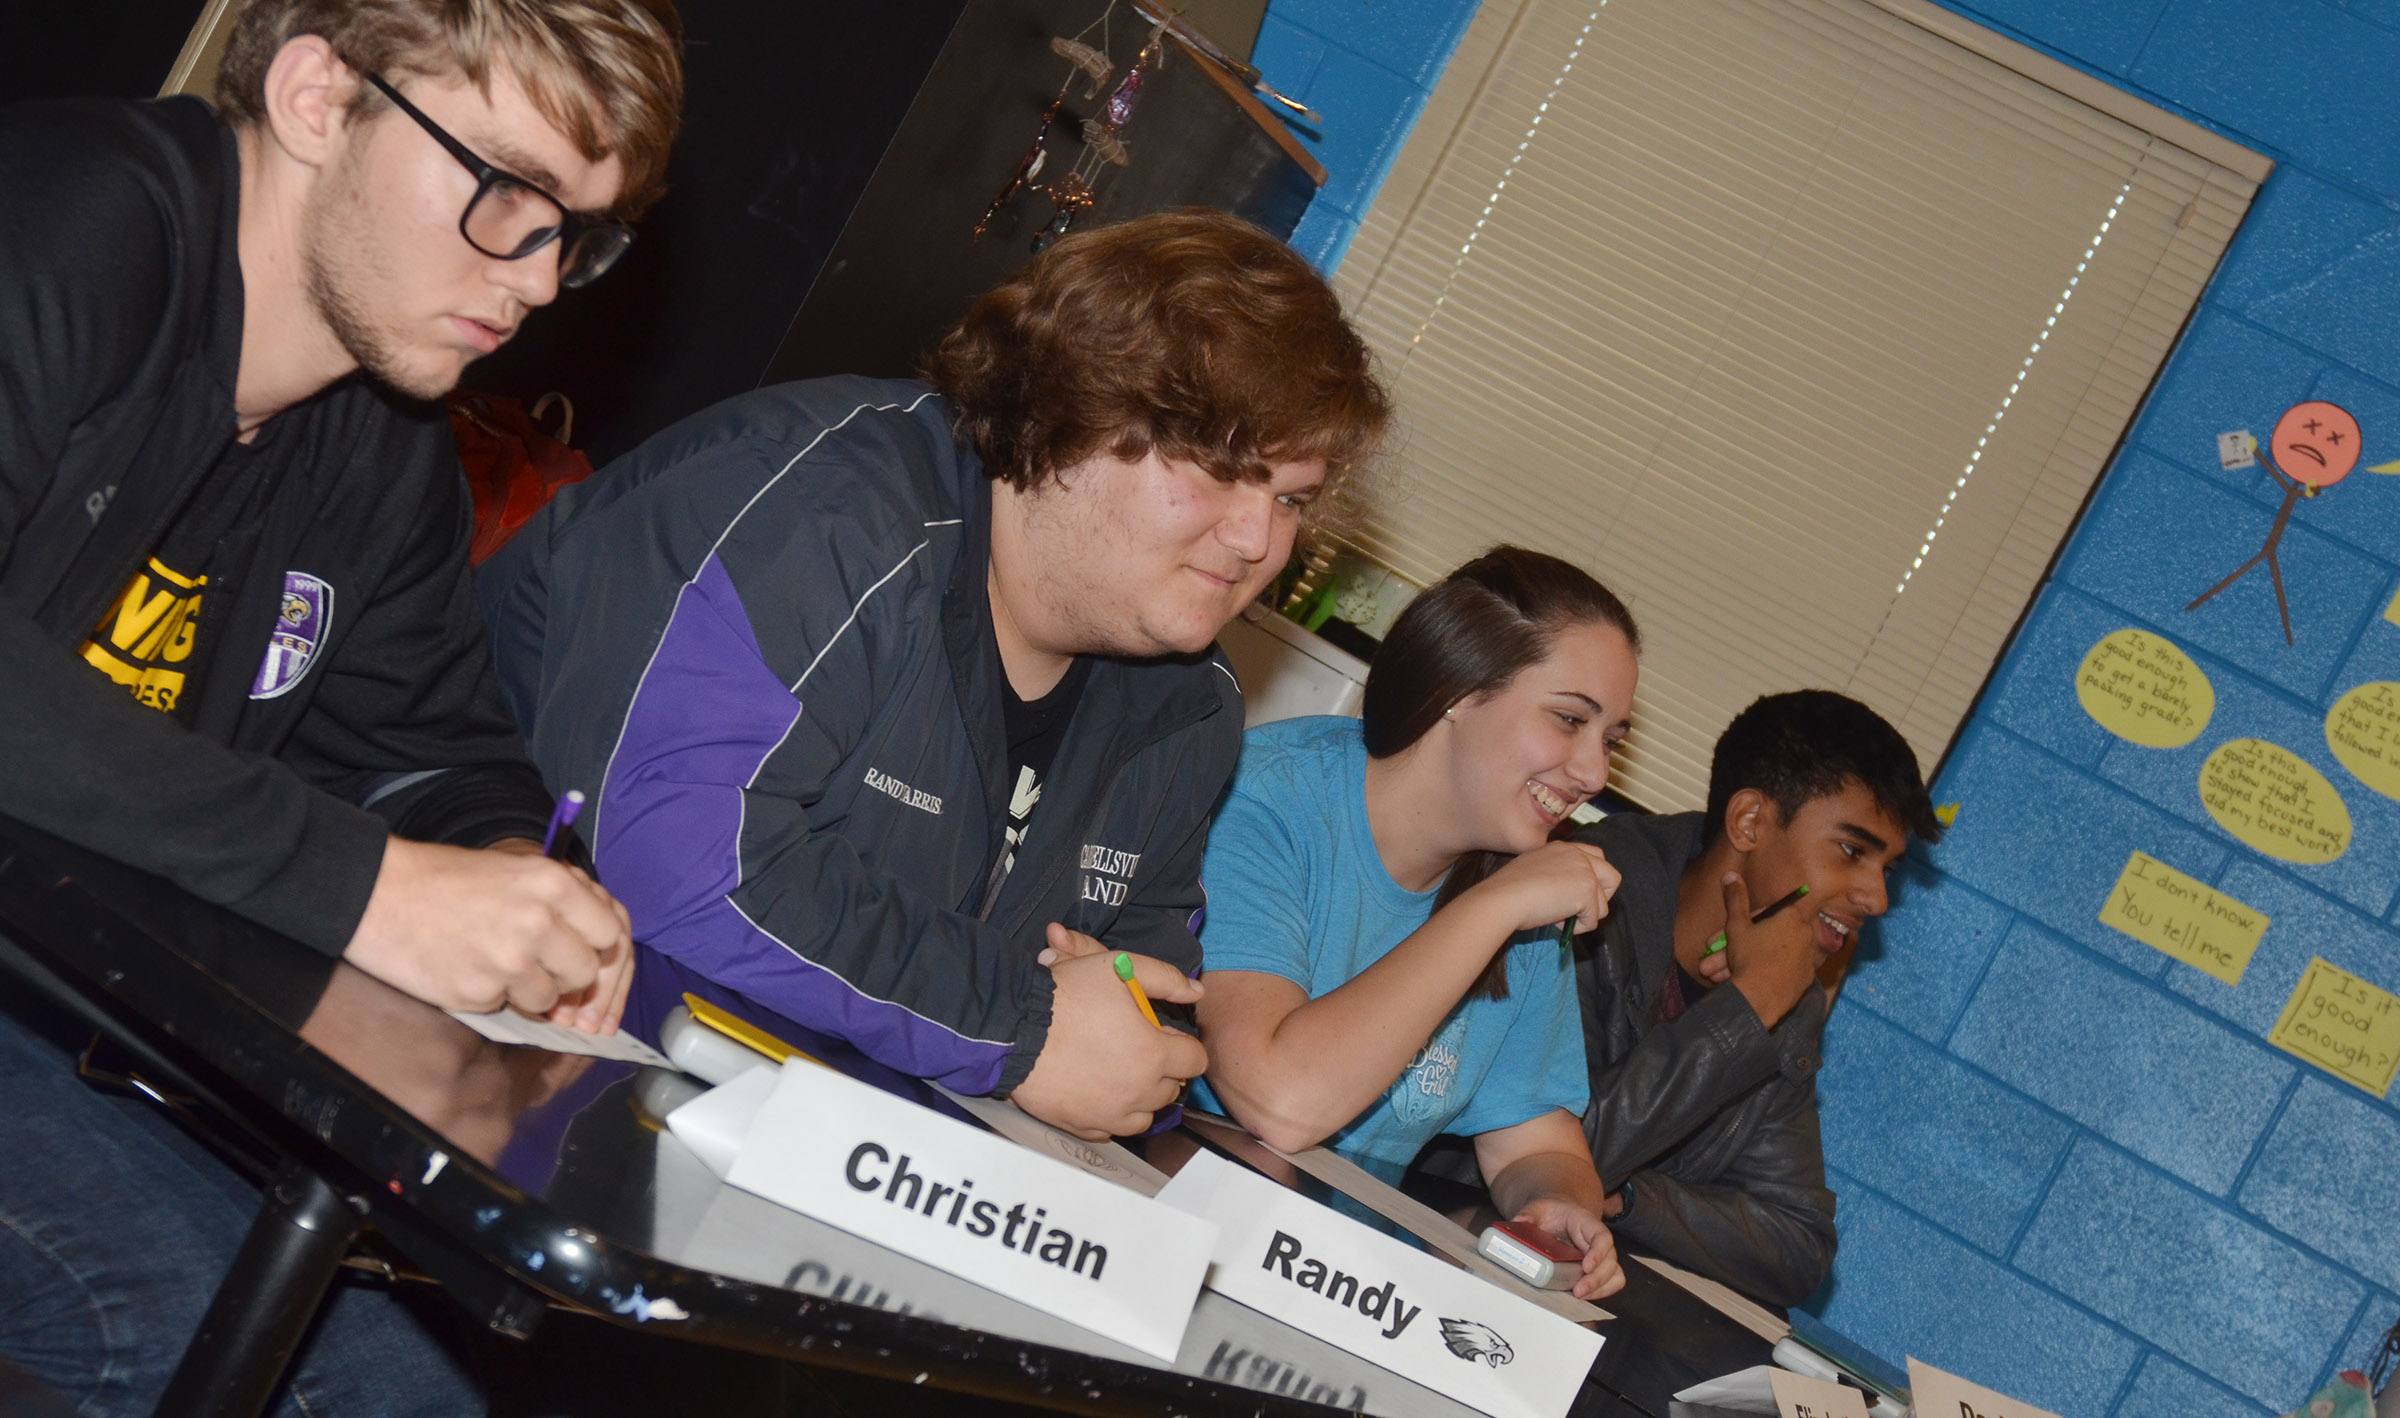 From left, CHS academic team members Christian Berry, a senior, juniors Randy Harris and Elizabeth Sullivan and sophomore David Silva listen to a question.